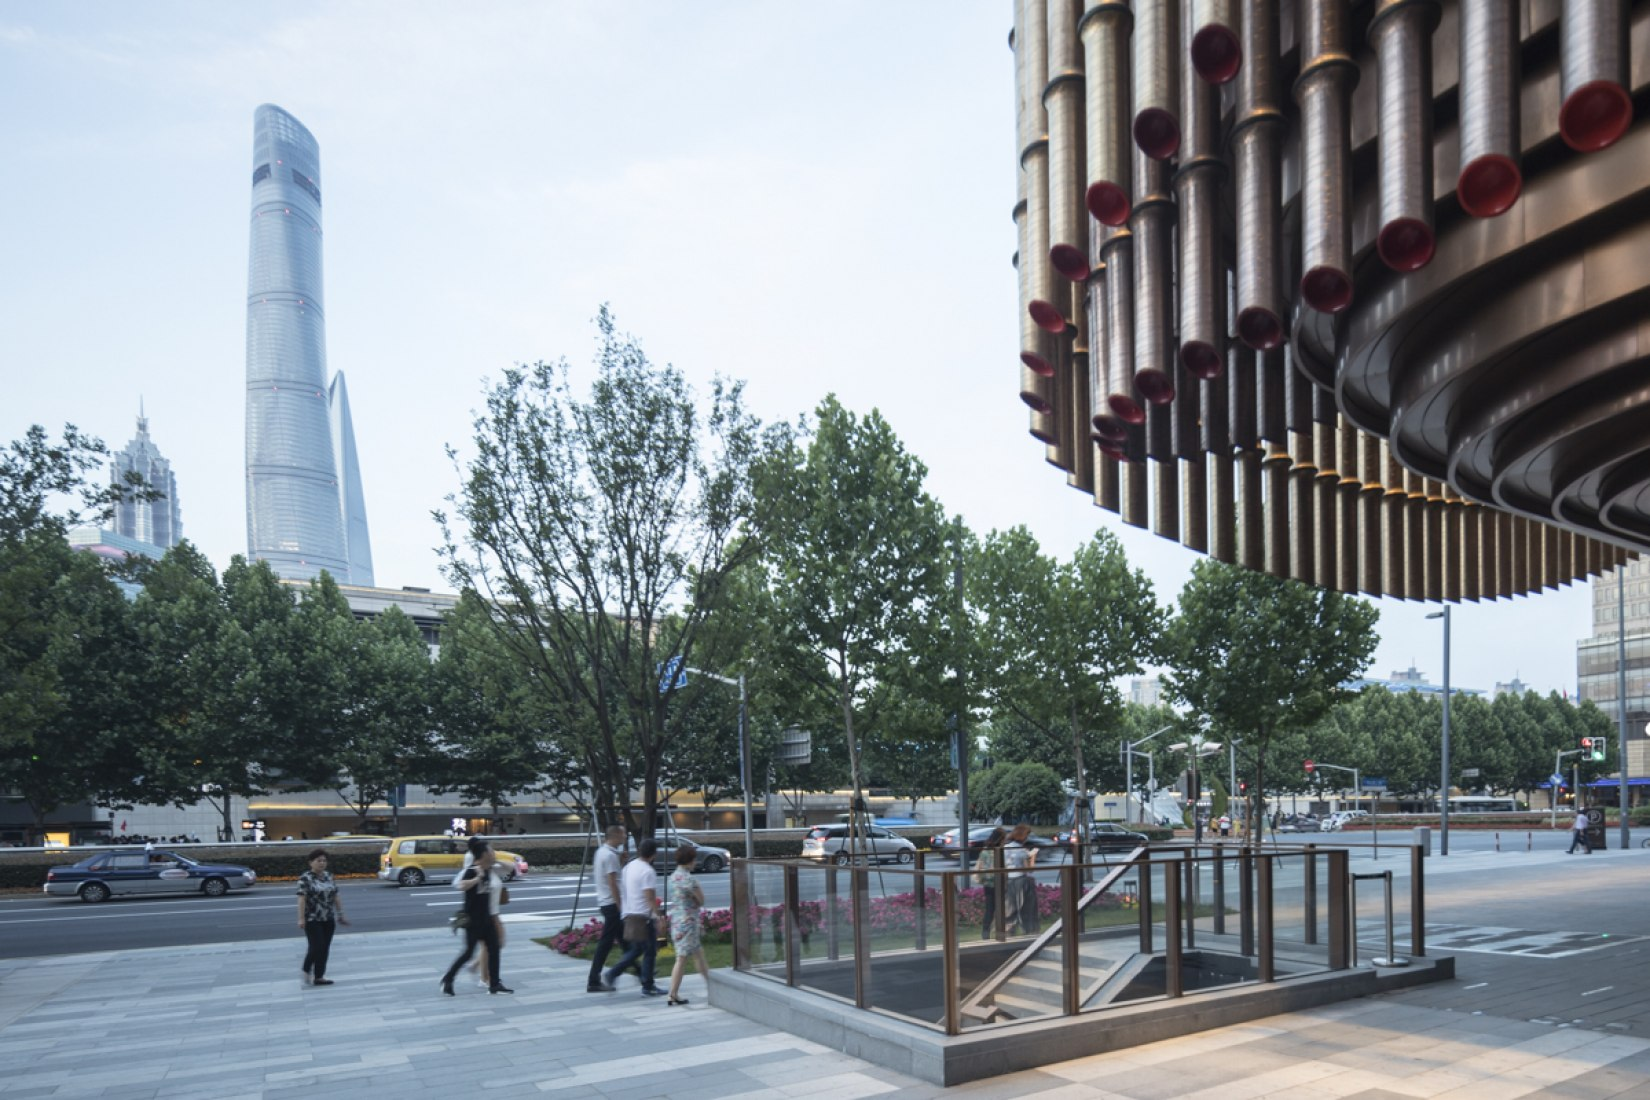 Fosun FFosun Foundation and Bund Finance Centre by Heatherwick Studio & Foster + Partners. Photograph © Laurian Ghinitoiuoundation y Bund Finance Centre por Heatherwick Studio y Foster + Partners. Fotografía © Laurian Ghinitoiu